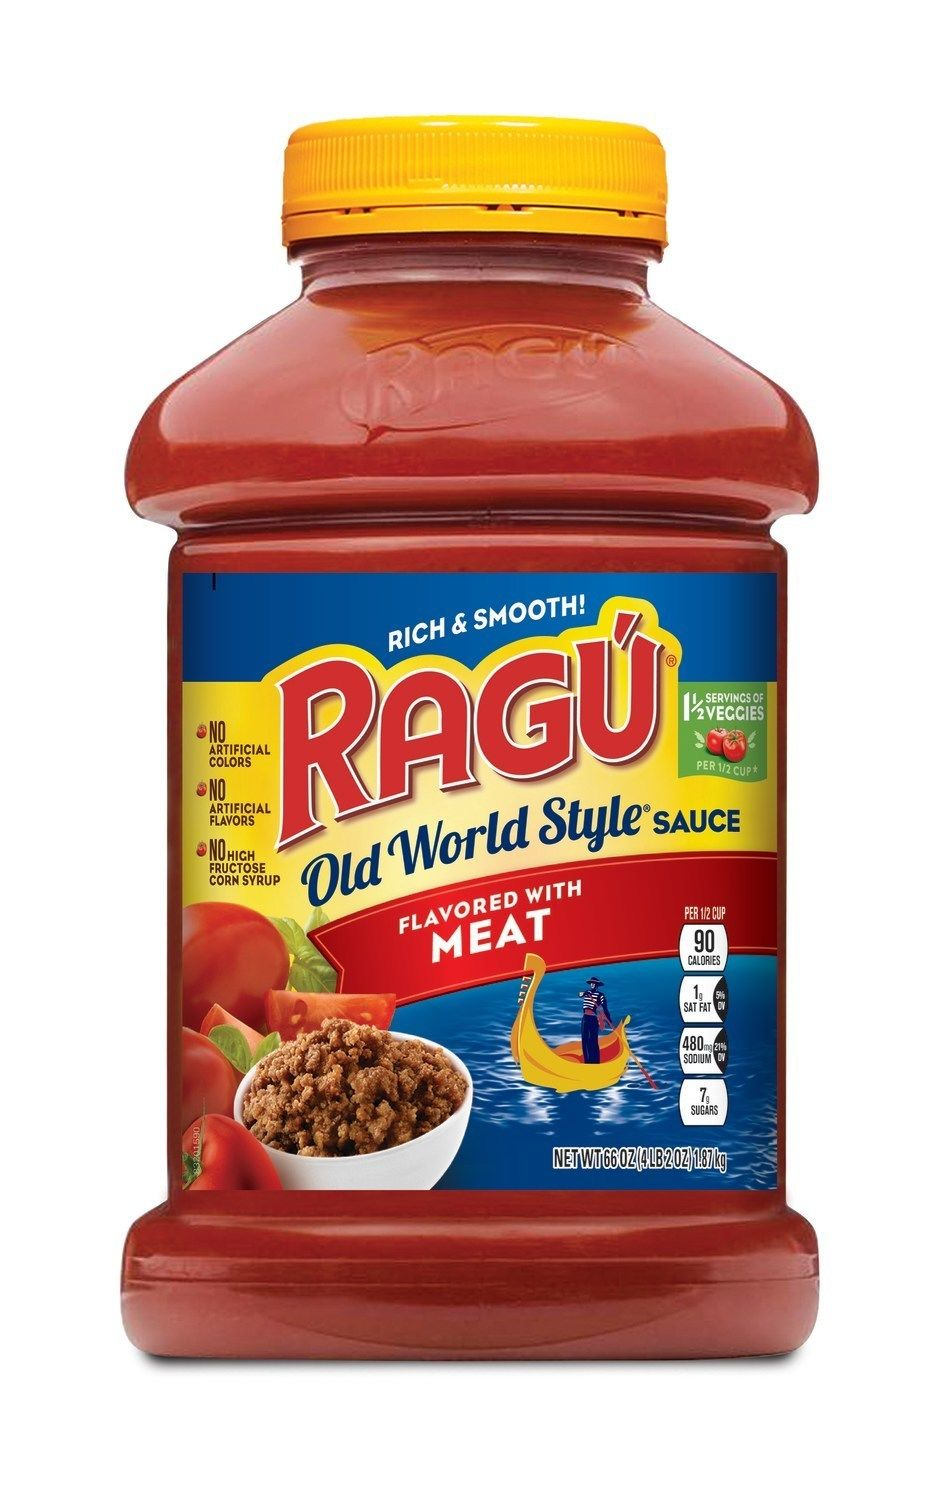 RAGU Old World Style Flavored with Meat 66oz Jar (PRNewsfoto/Mizkan America, Inc.)